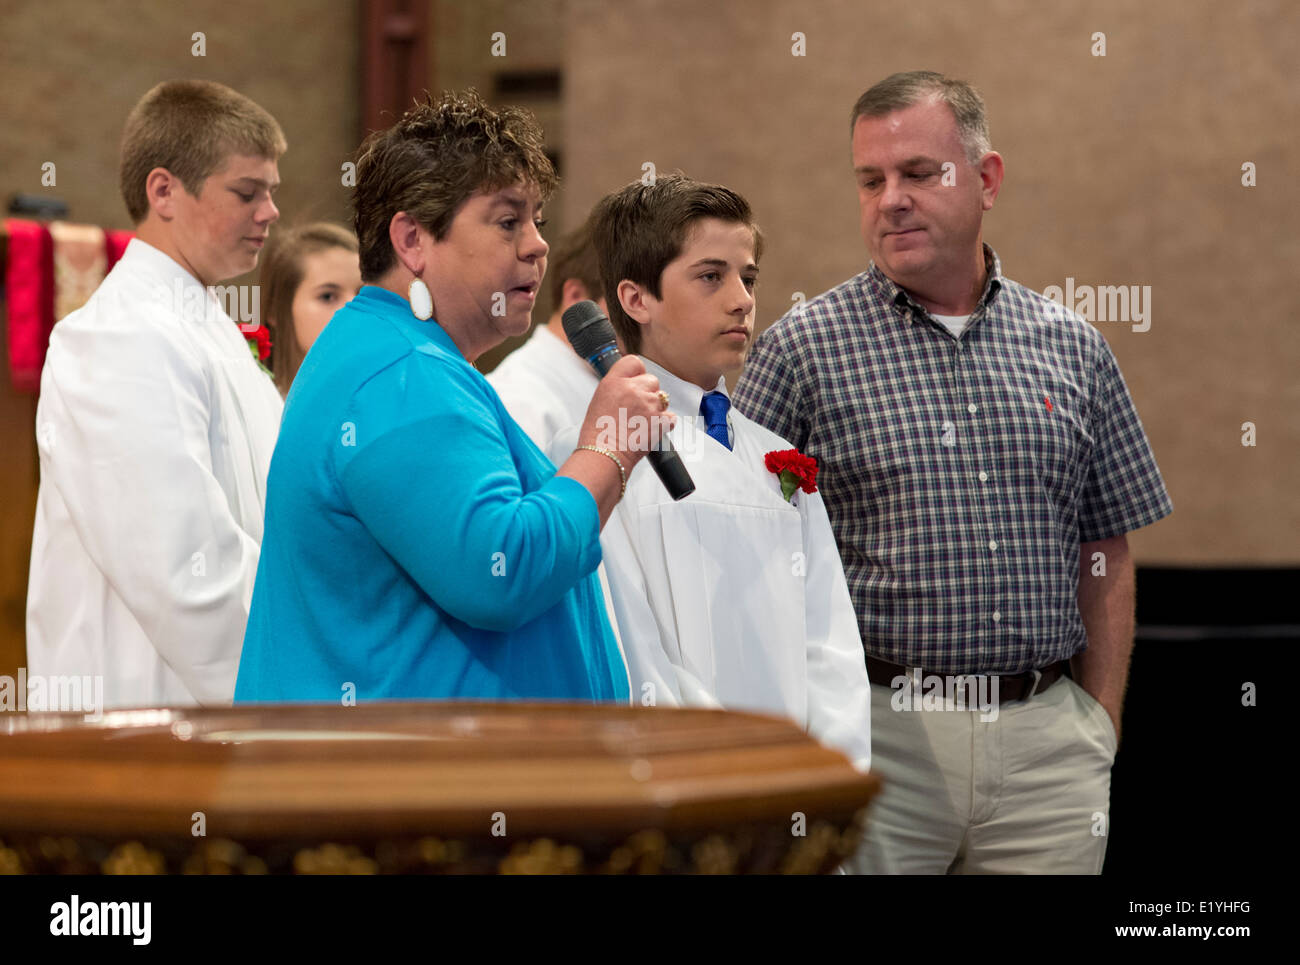 Lutheran teenager participating in the Rite of Confirmation is introduced to the congregation by his sponsor. - Stock Image